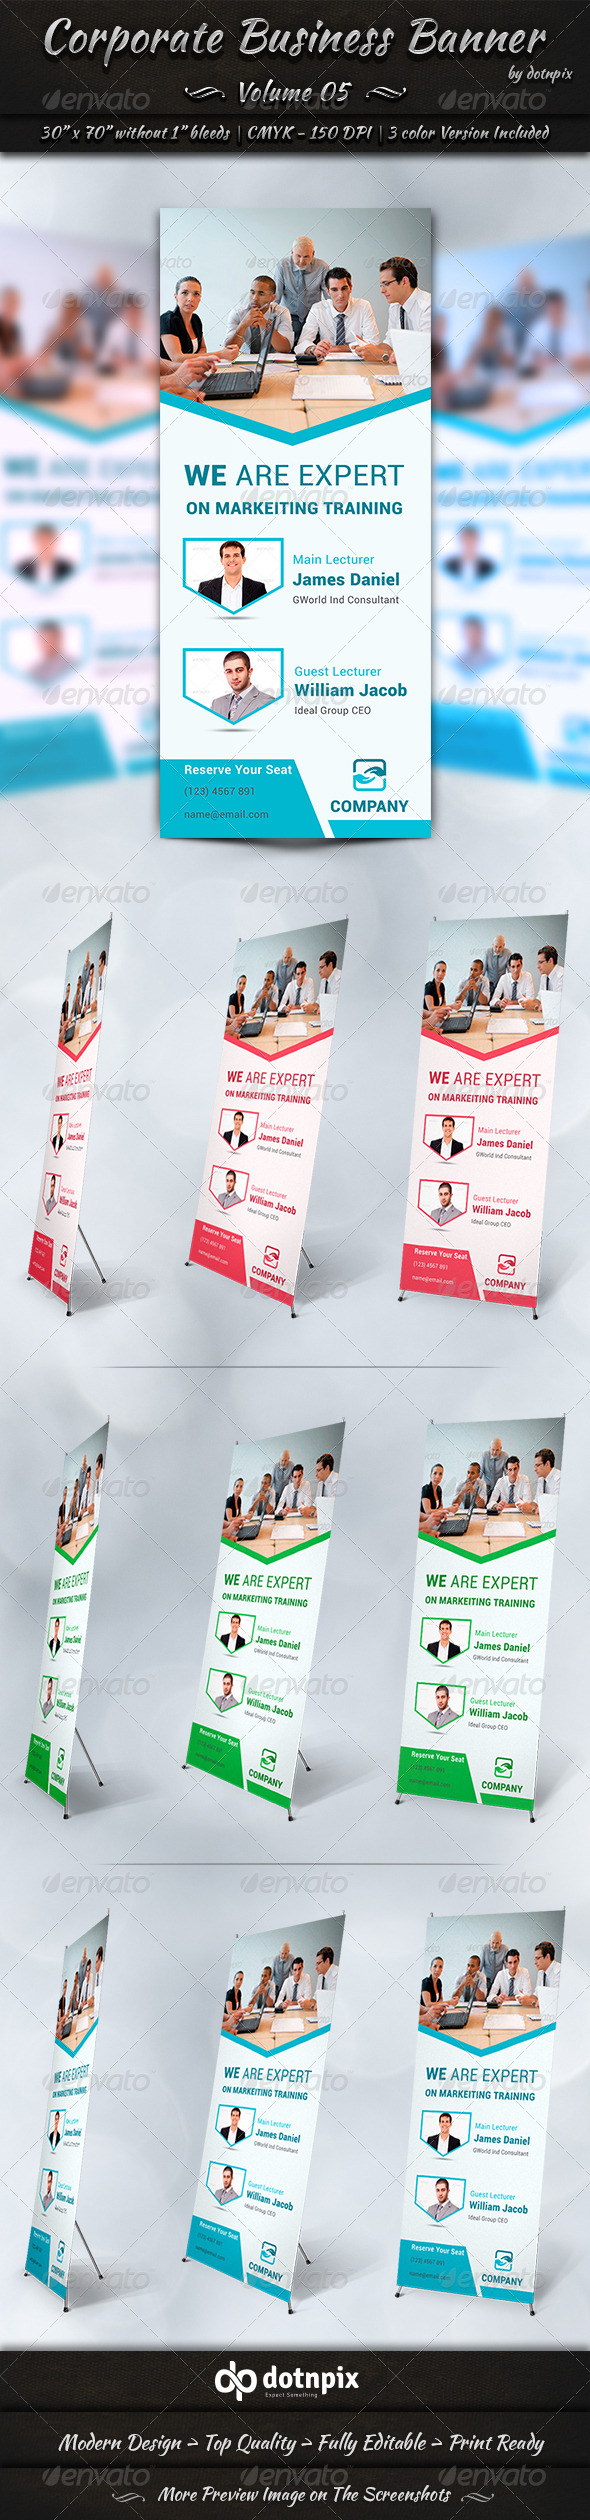 GraphicRiver Corporate Business Banner Volume 5 7772244